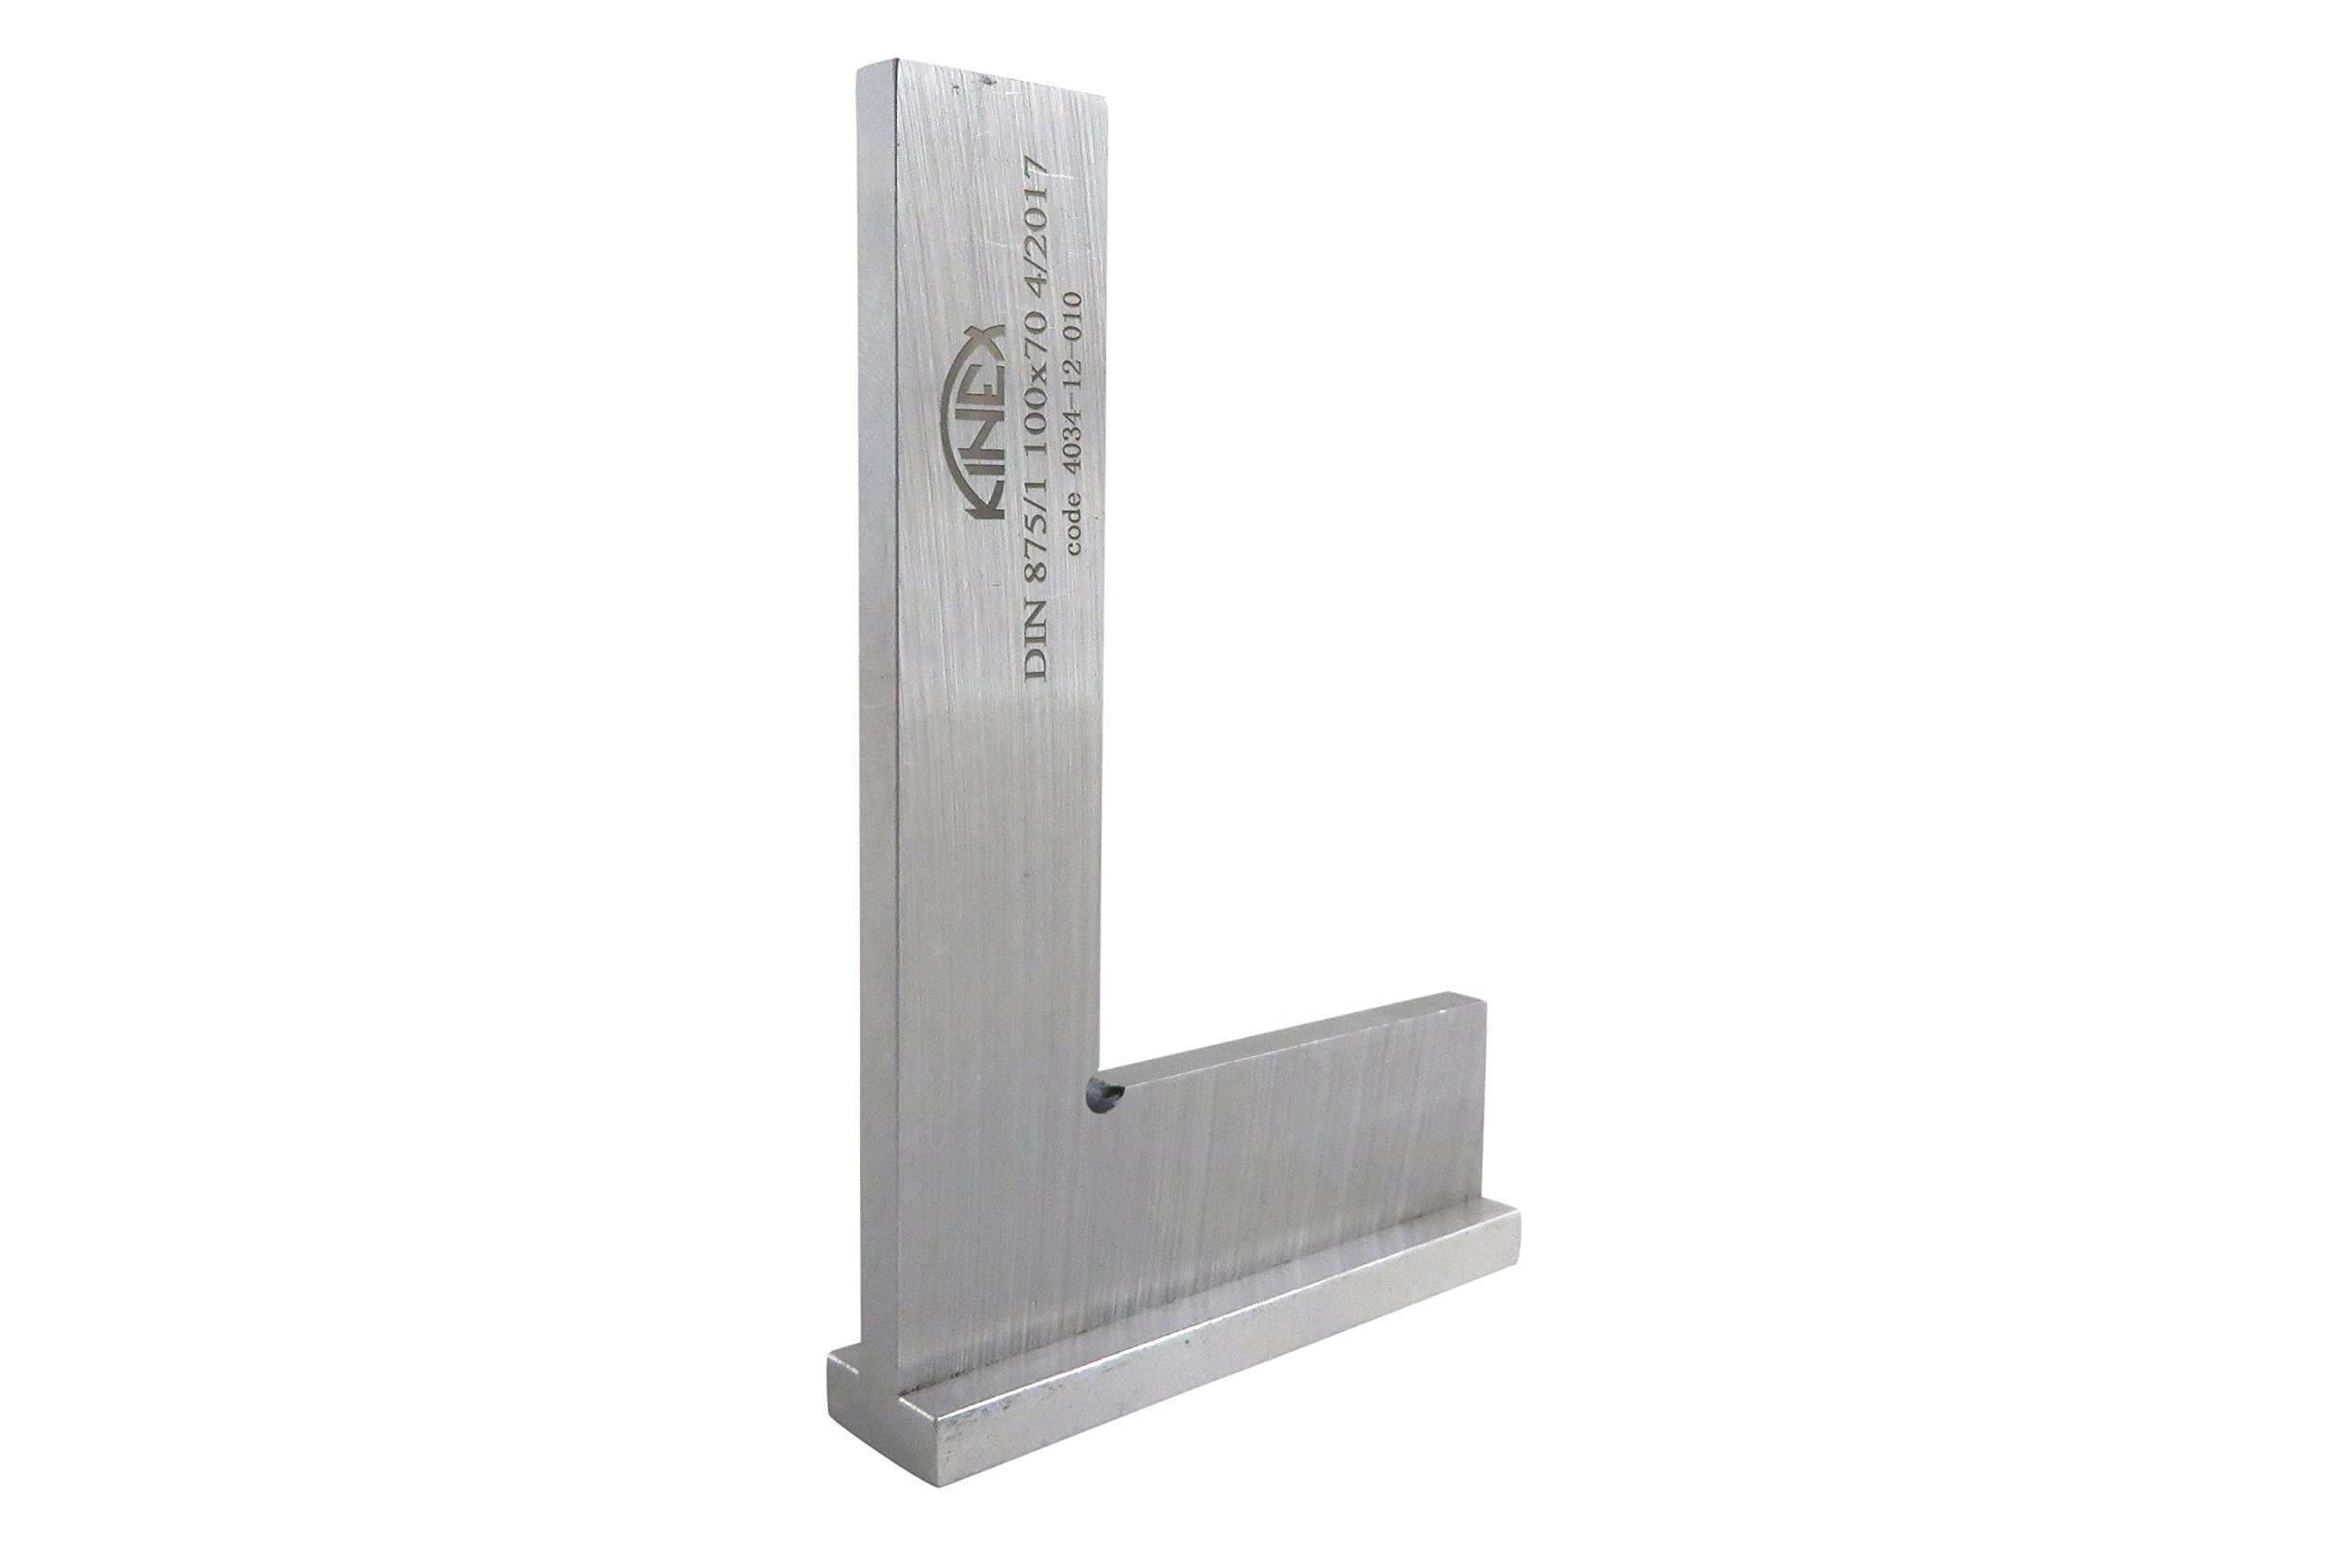 """Kinex 4034-12-010 4'' Tall x 2.75'' Wide Try Machinist Square with Base DIN 875/1 Square to w/in 0.0005"""""""